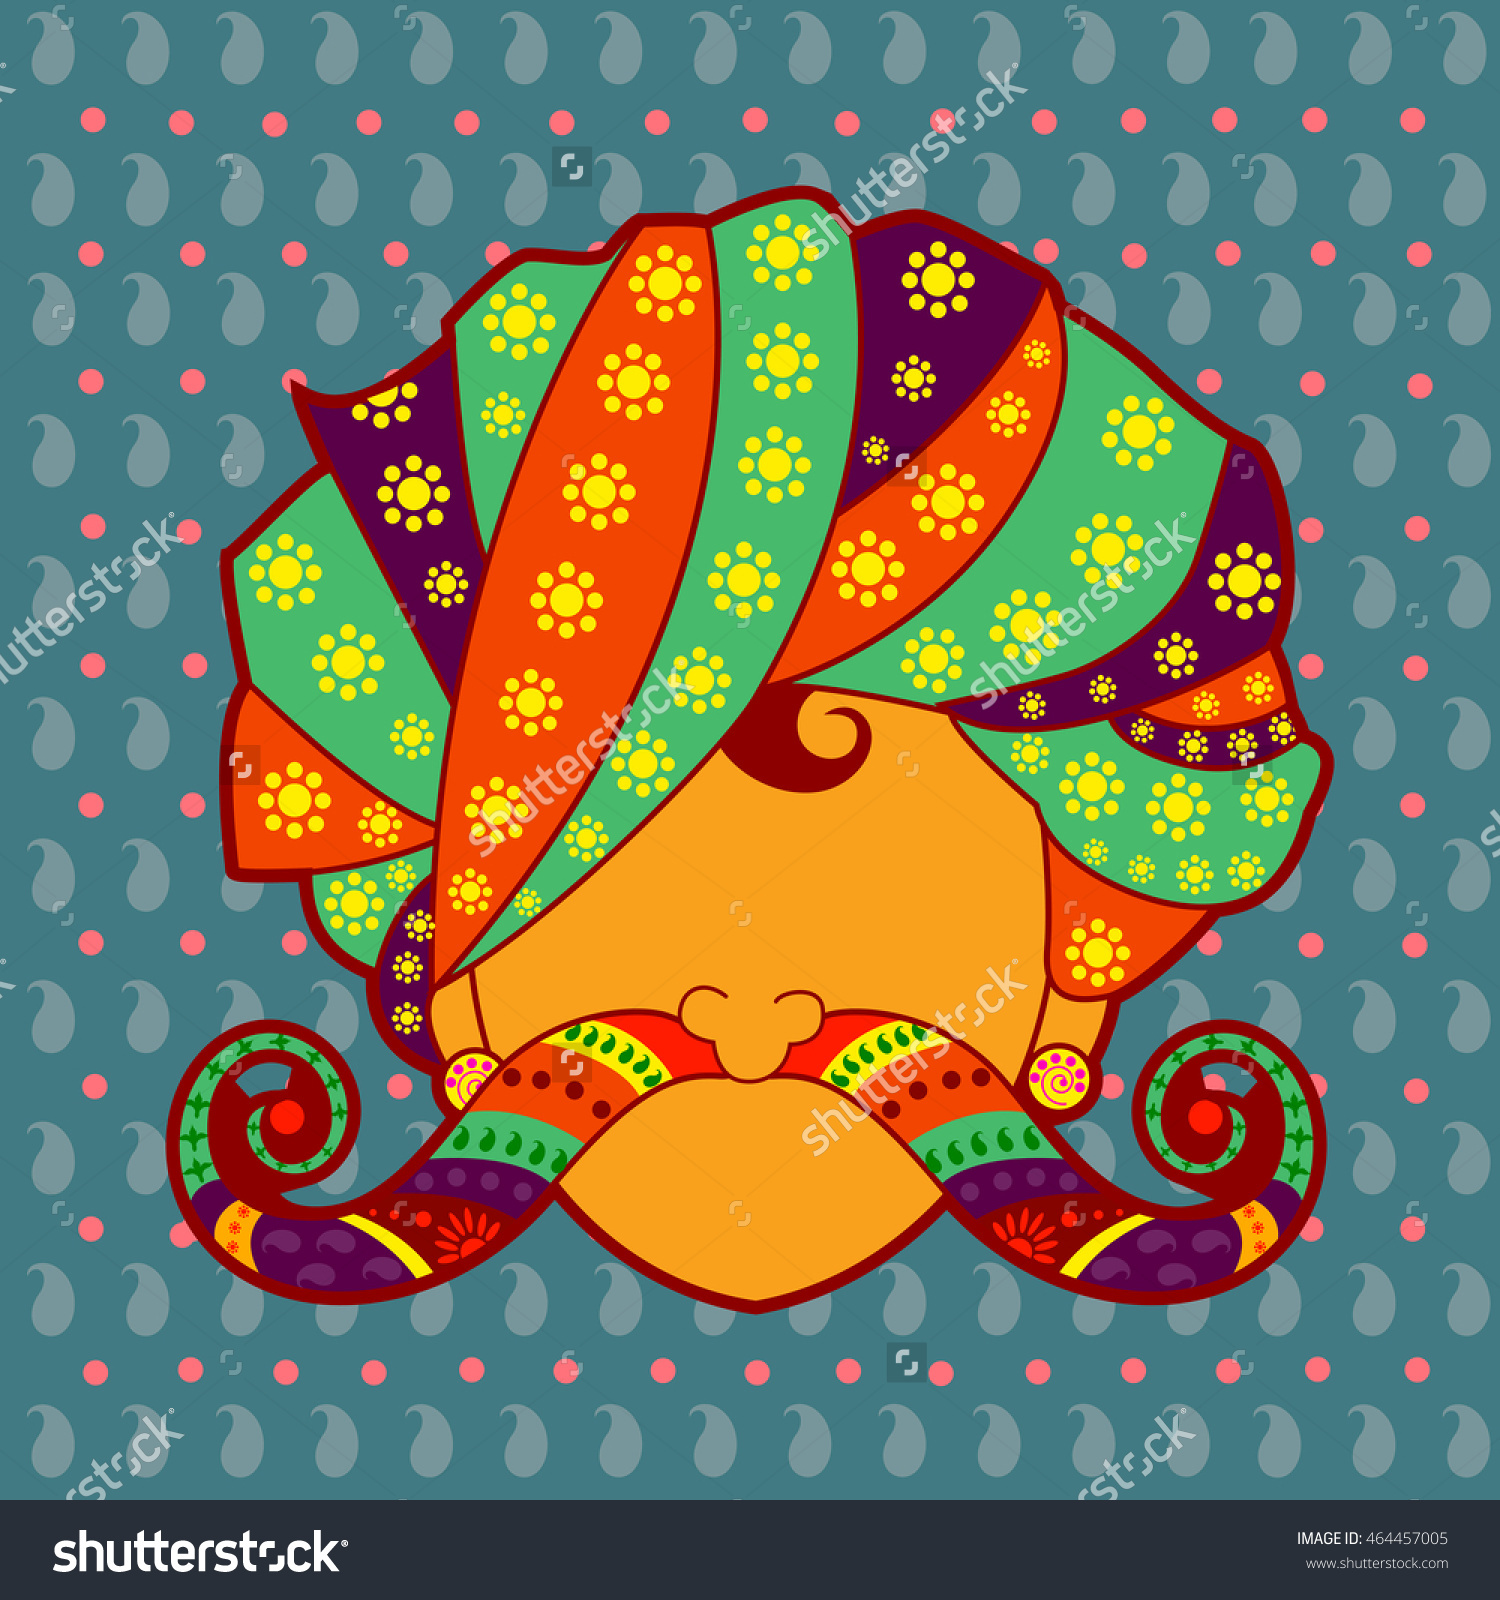 Vector Design Rajasthani Man Turban Moustache Stock Vector.